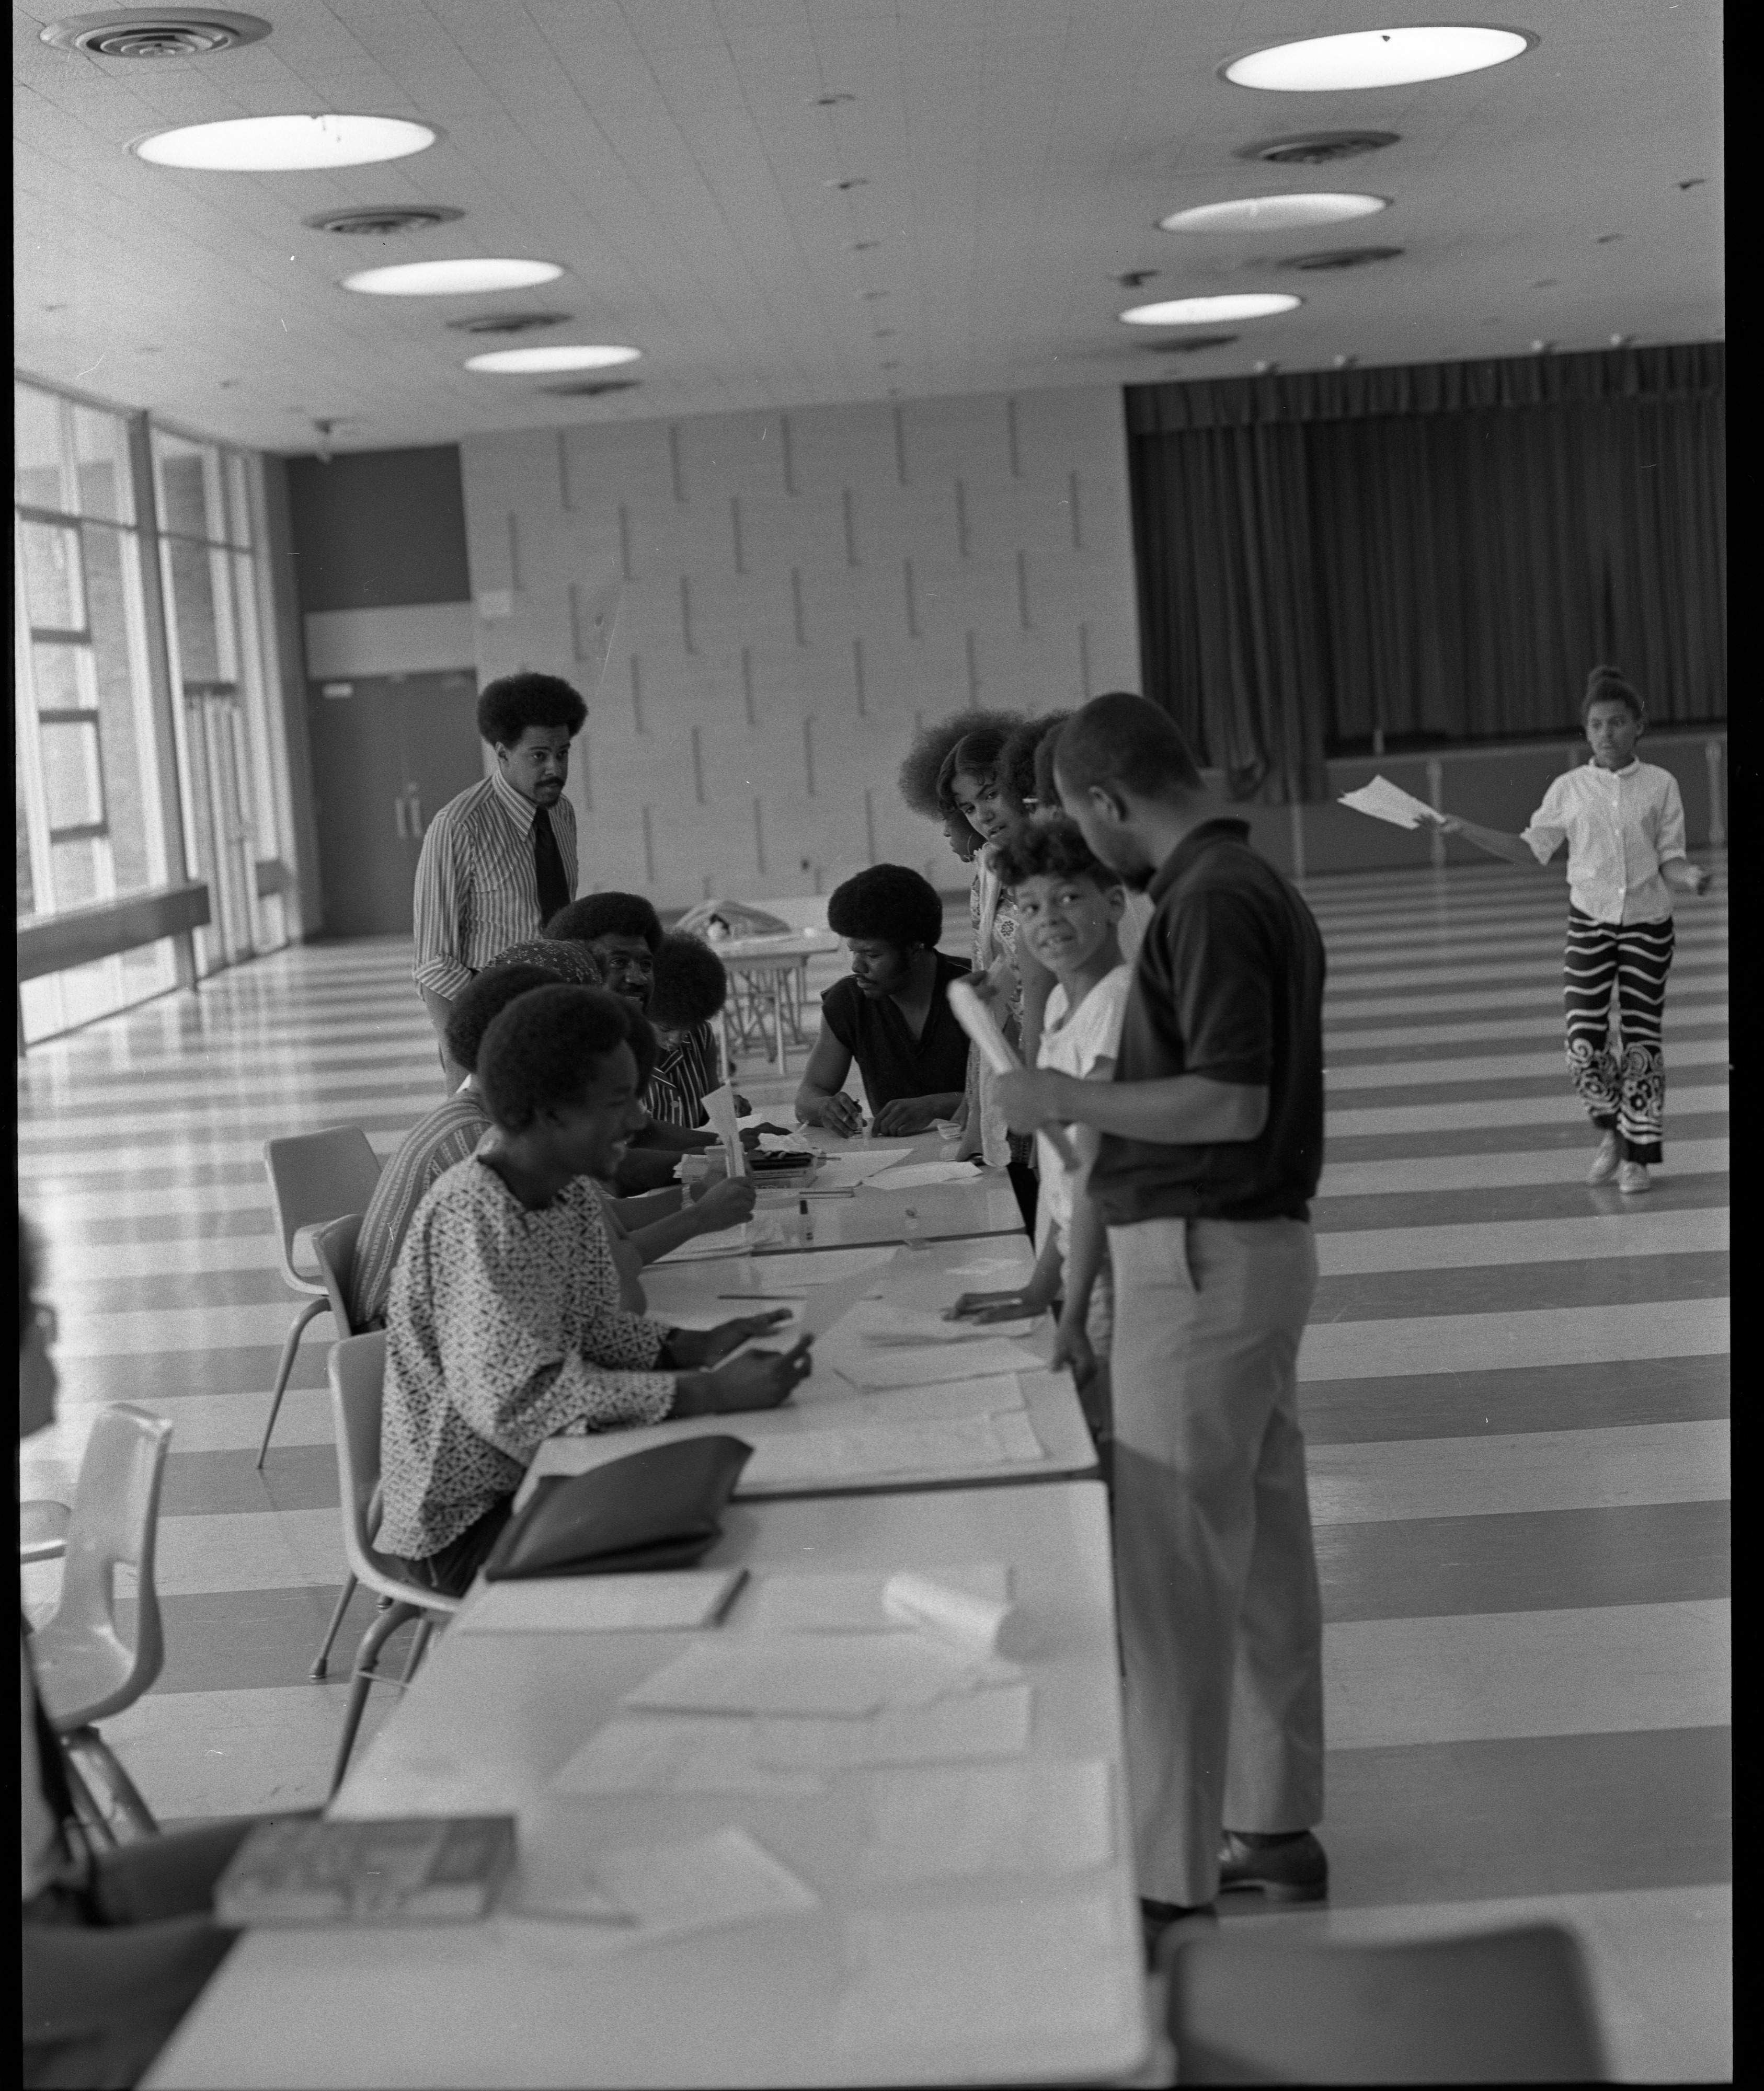 O'Dell Lewis Watches Students Enrolling In Summer School At Forsythe Junior High, June 16, 1971 image